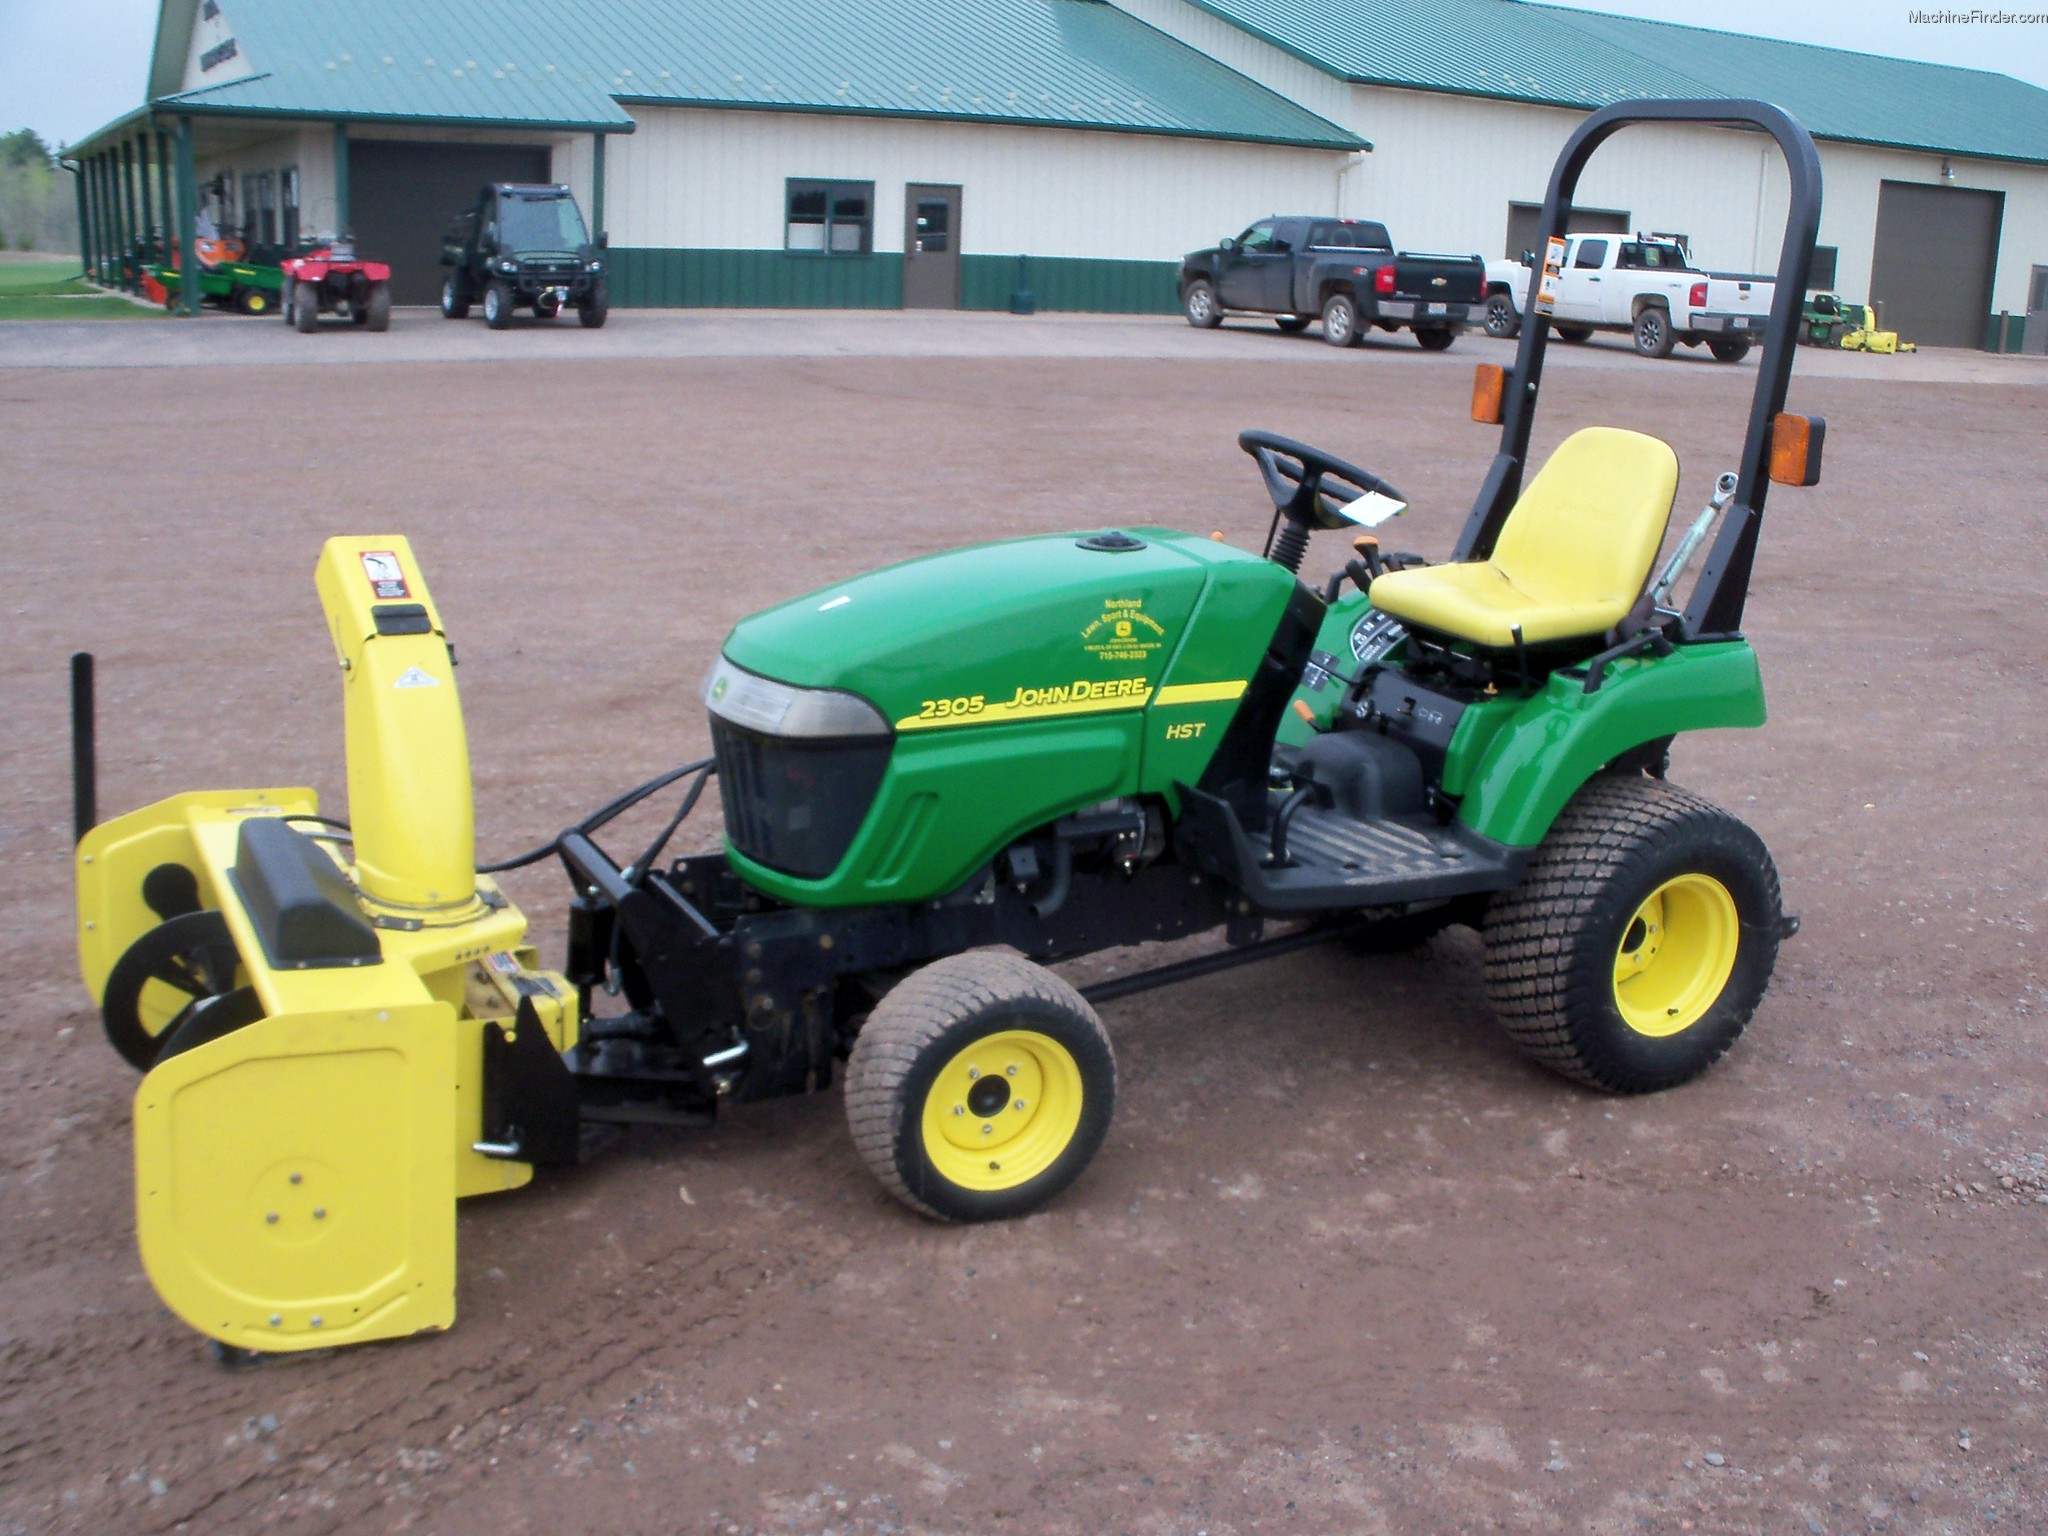 John deere tiller 33 john deere tillers john deere tillers 2007 john deere 2305 tractors compact 1 40hp john fandeluxe Gallery